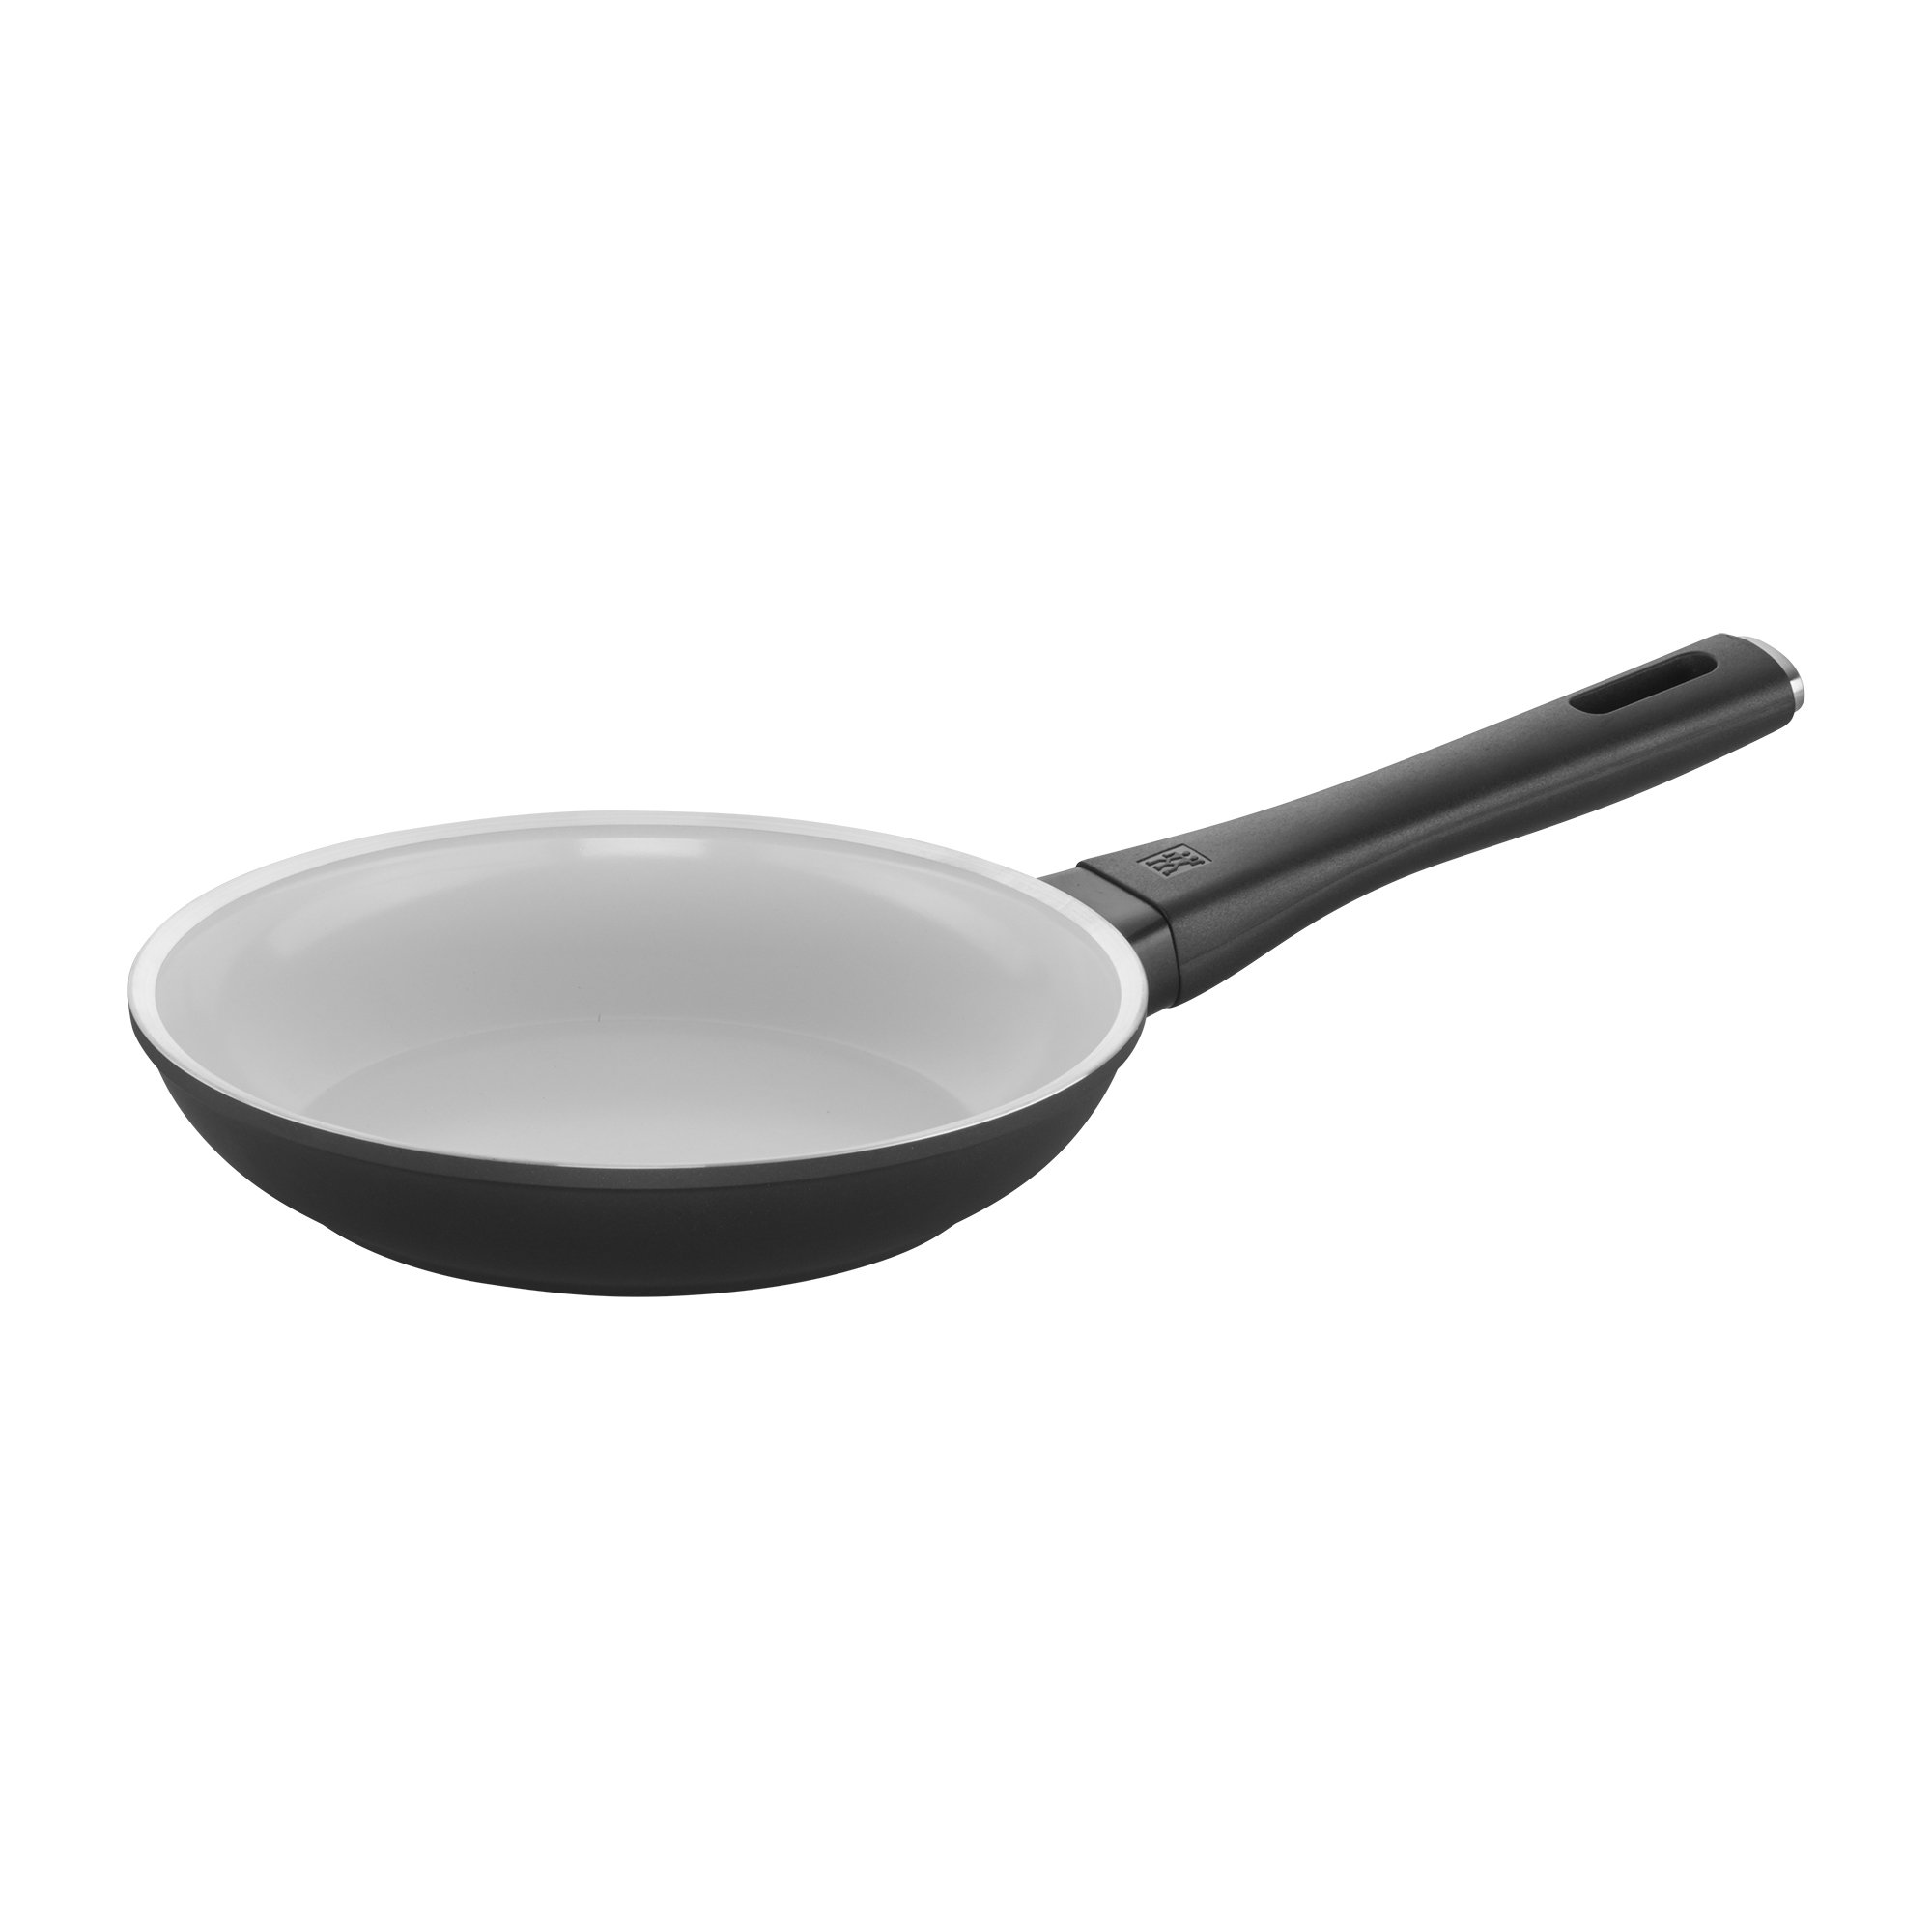 ZWILLING Carrara Plus 8-inch Ceramic Nonstick Fry Pan